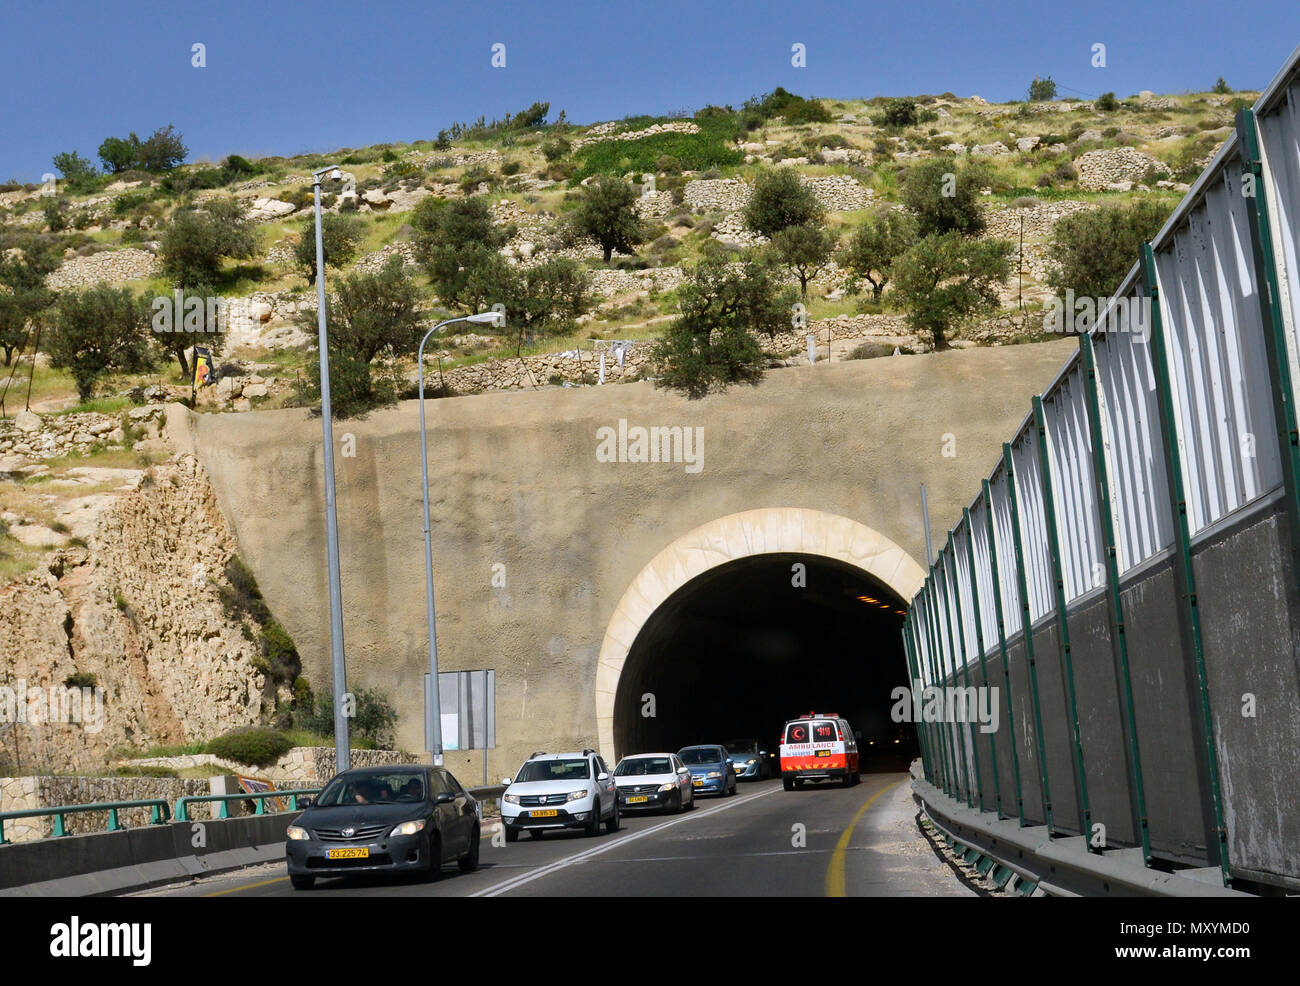 Israeli highway with wall protection in Gush Etzion, West Bank. - Stock Image